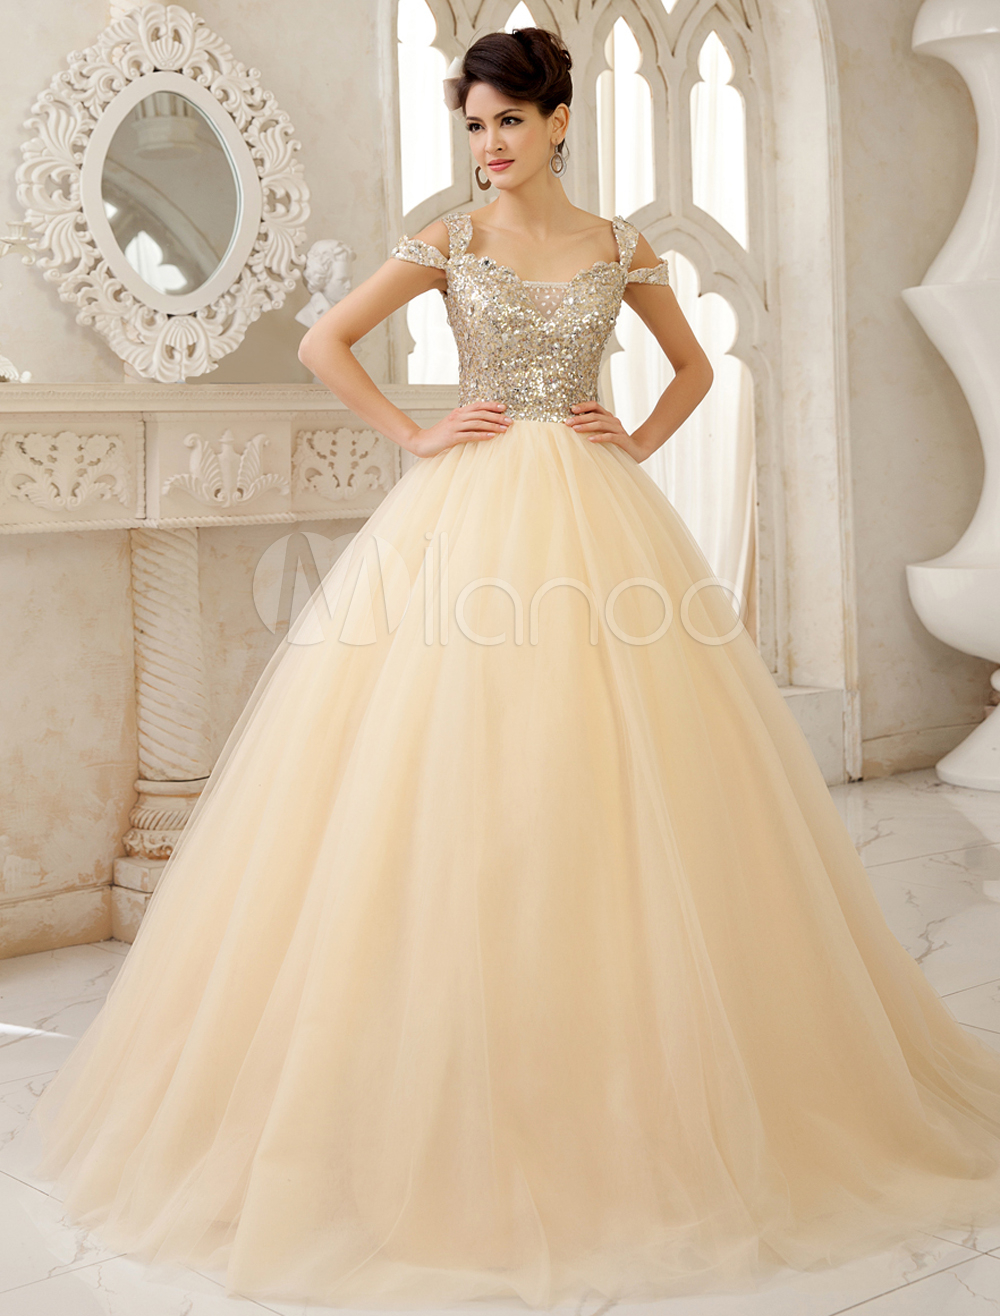 Champagne A-line Off-The-Shoulder Sequin Floor-Length Wedding Gown Milanoo